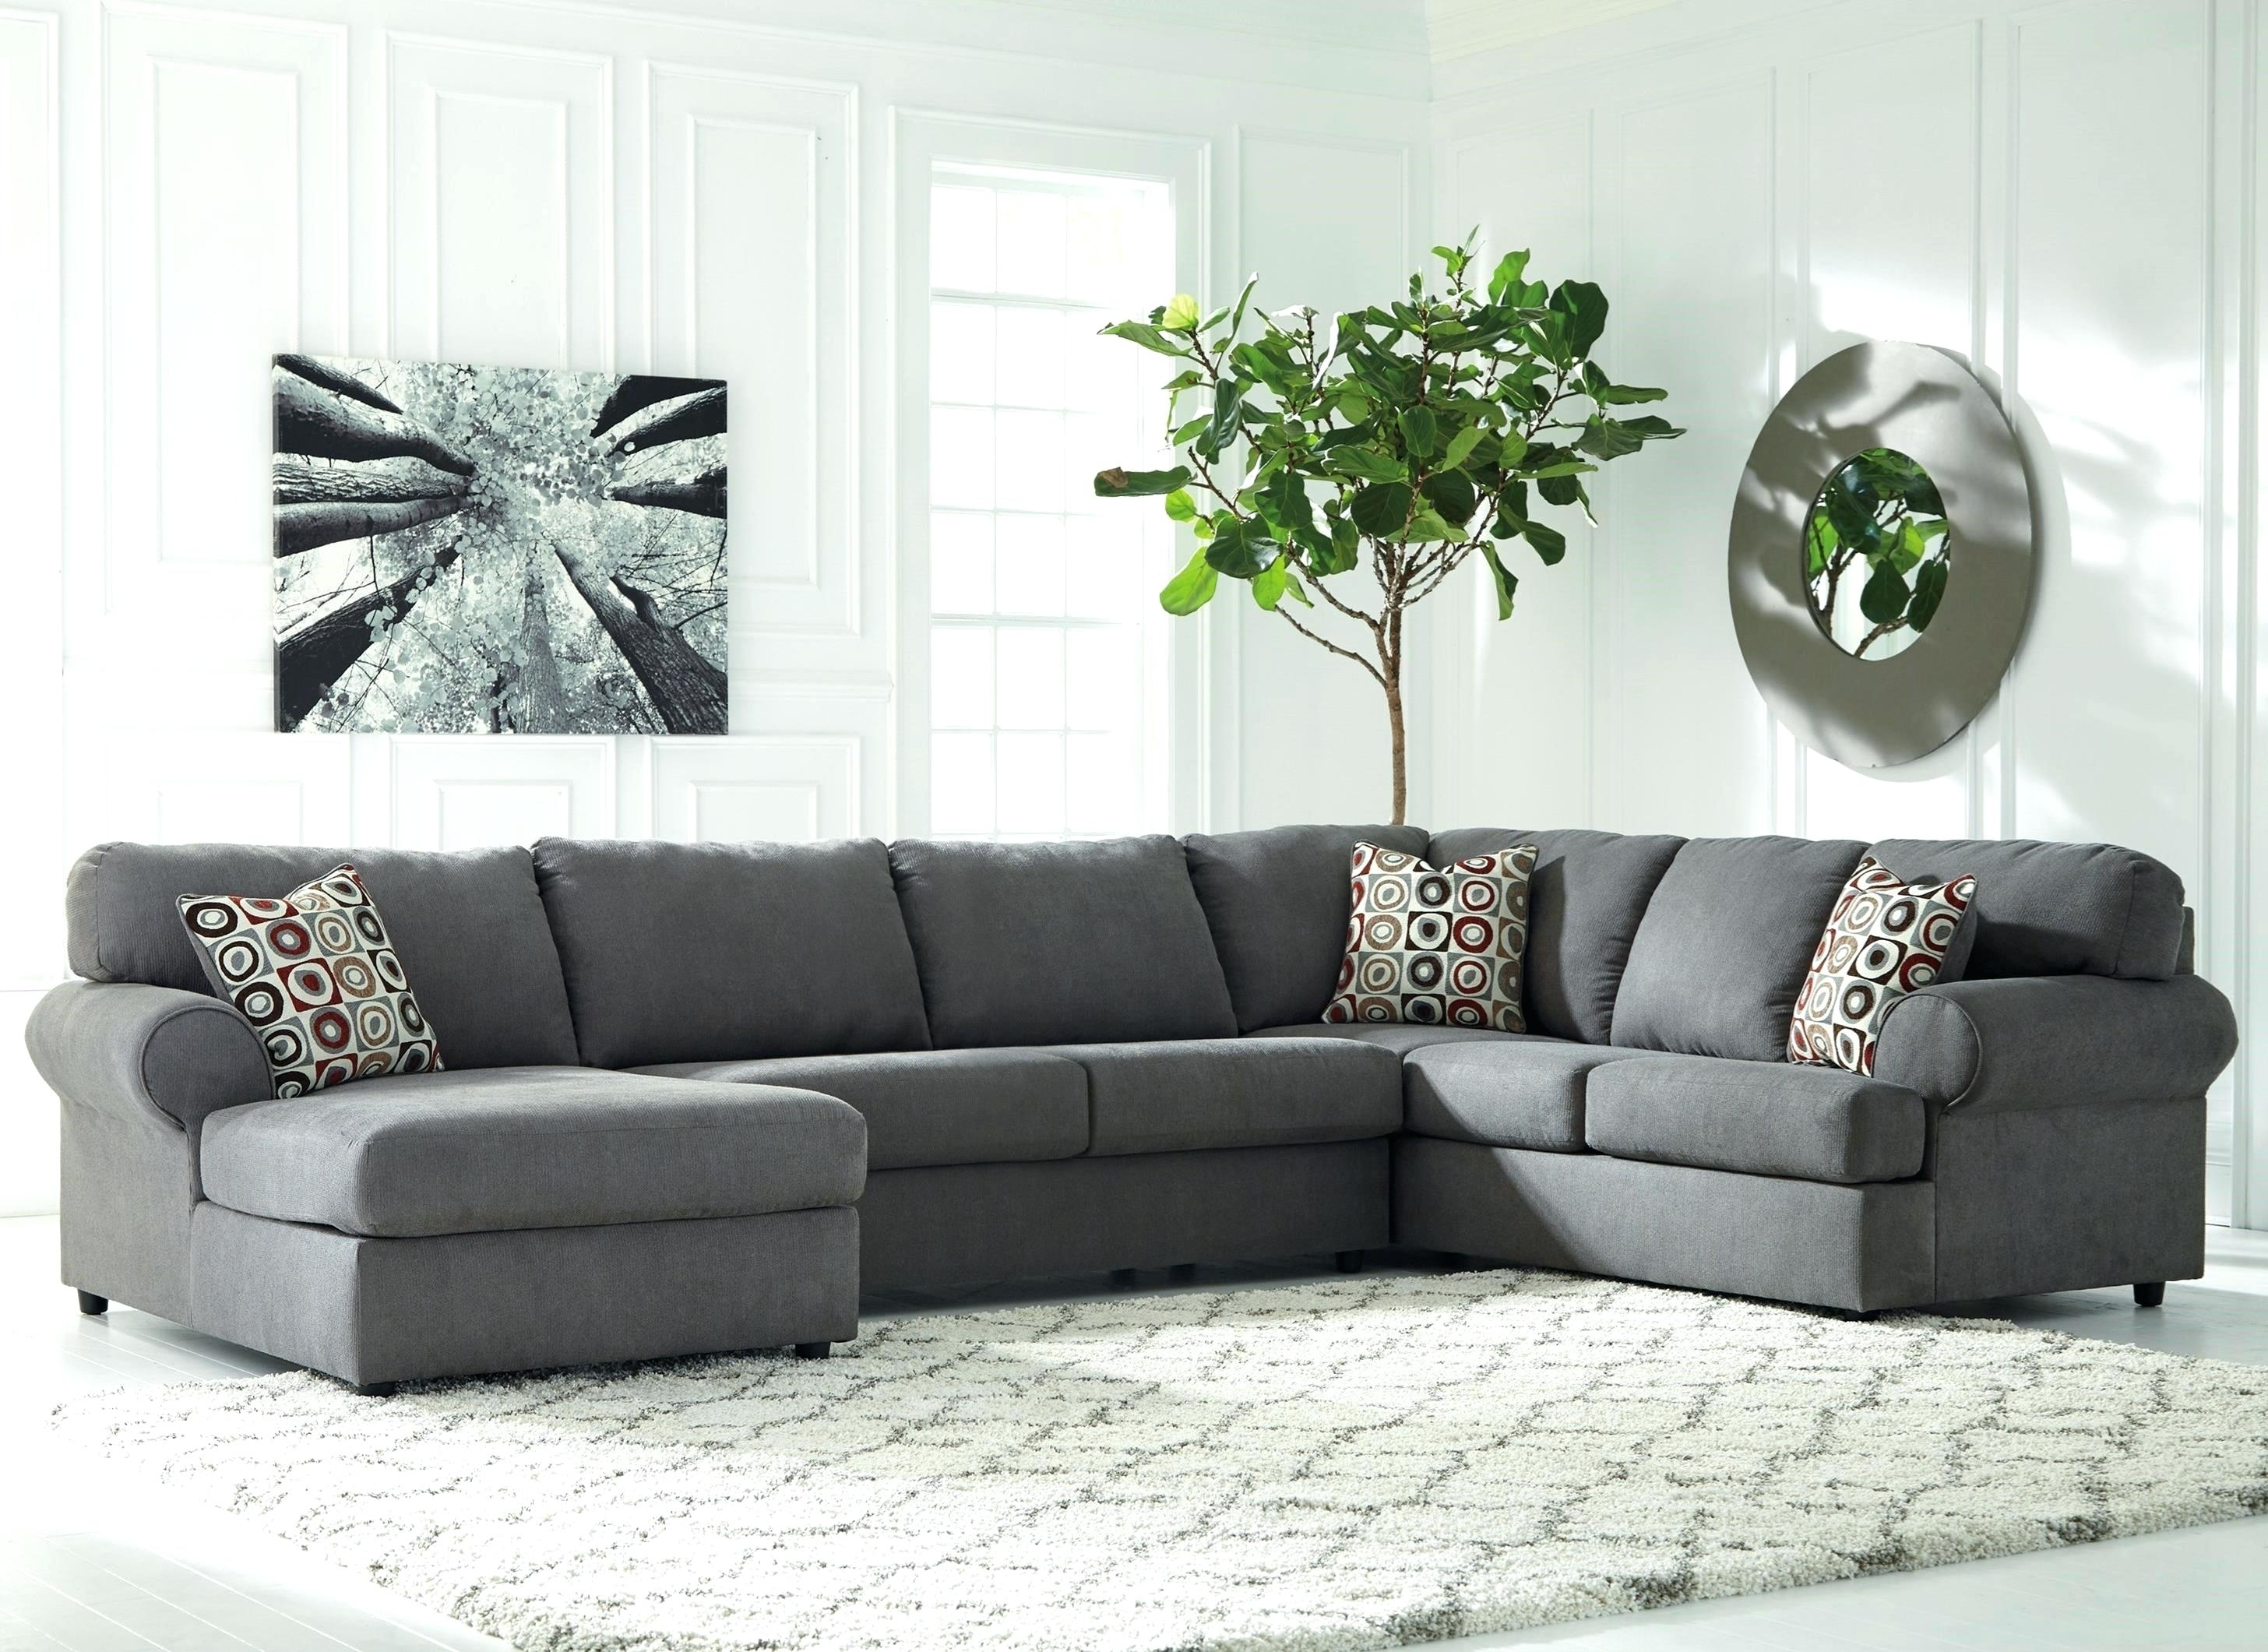 3 Piece Sectional Haven Blue Steel 3 Piece Sectional 3 Pc Reclining Within Haven Blue Steel 3 Piece Sectionals (Photo 4 of 25)